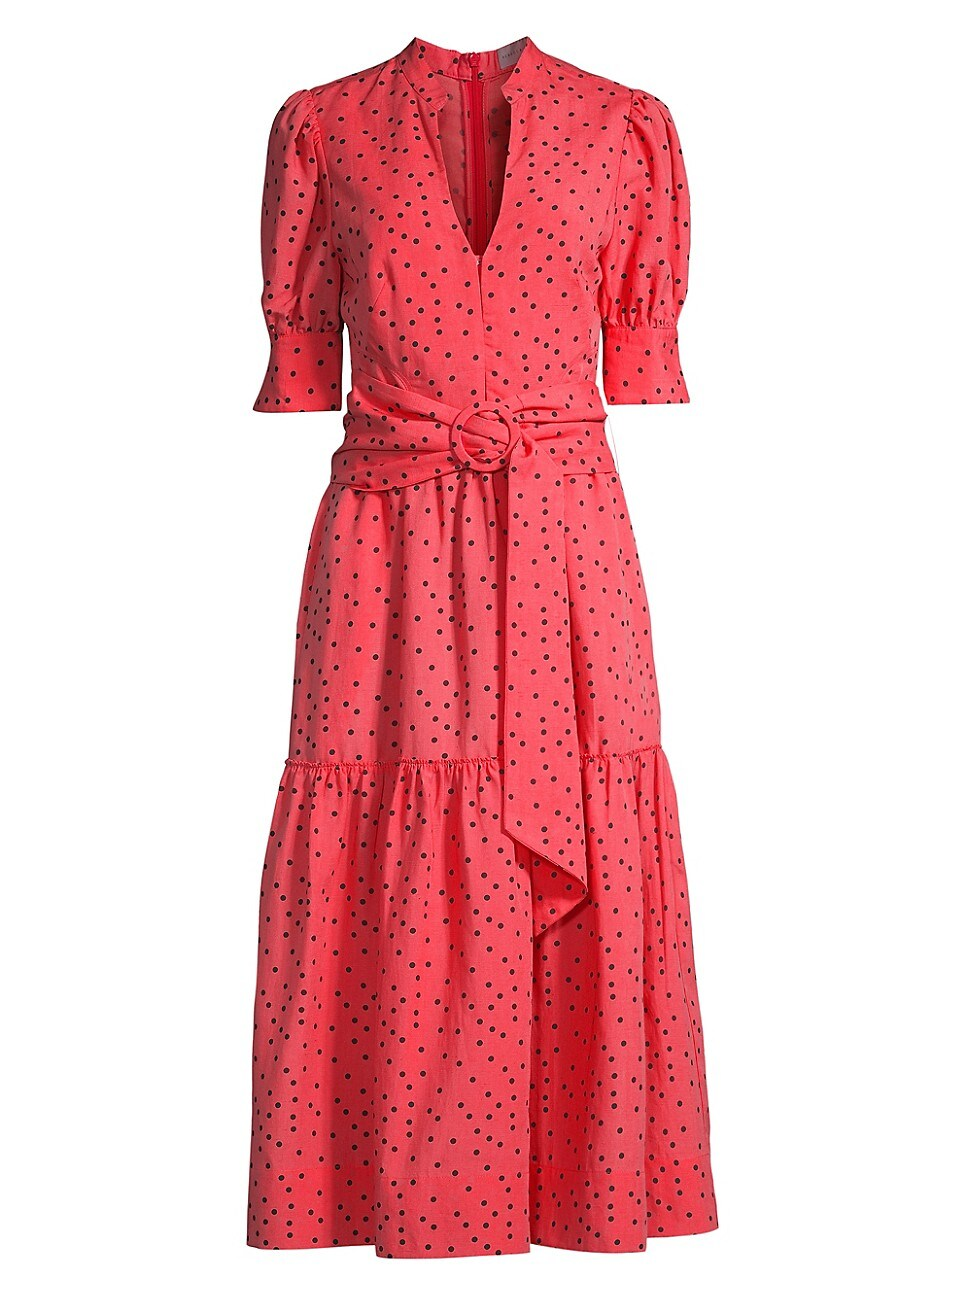 Rebecca Vallance WOMEN'S HOLLIDAY POLKA DOT MIDI DRESS